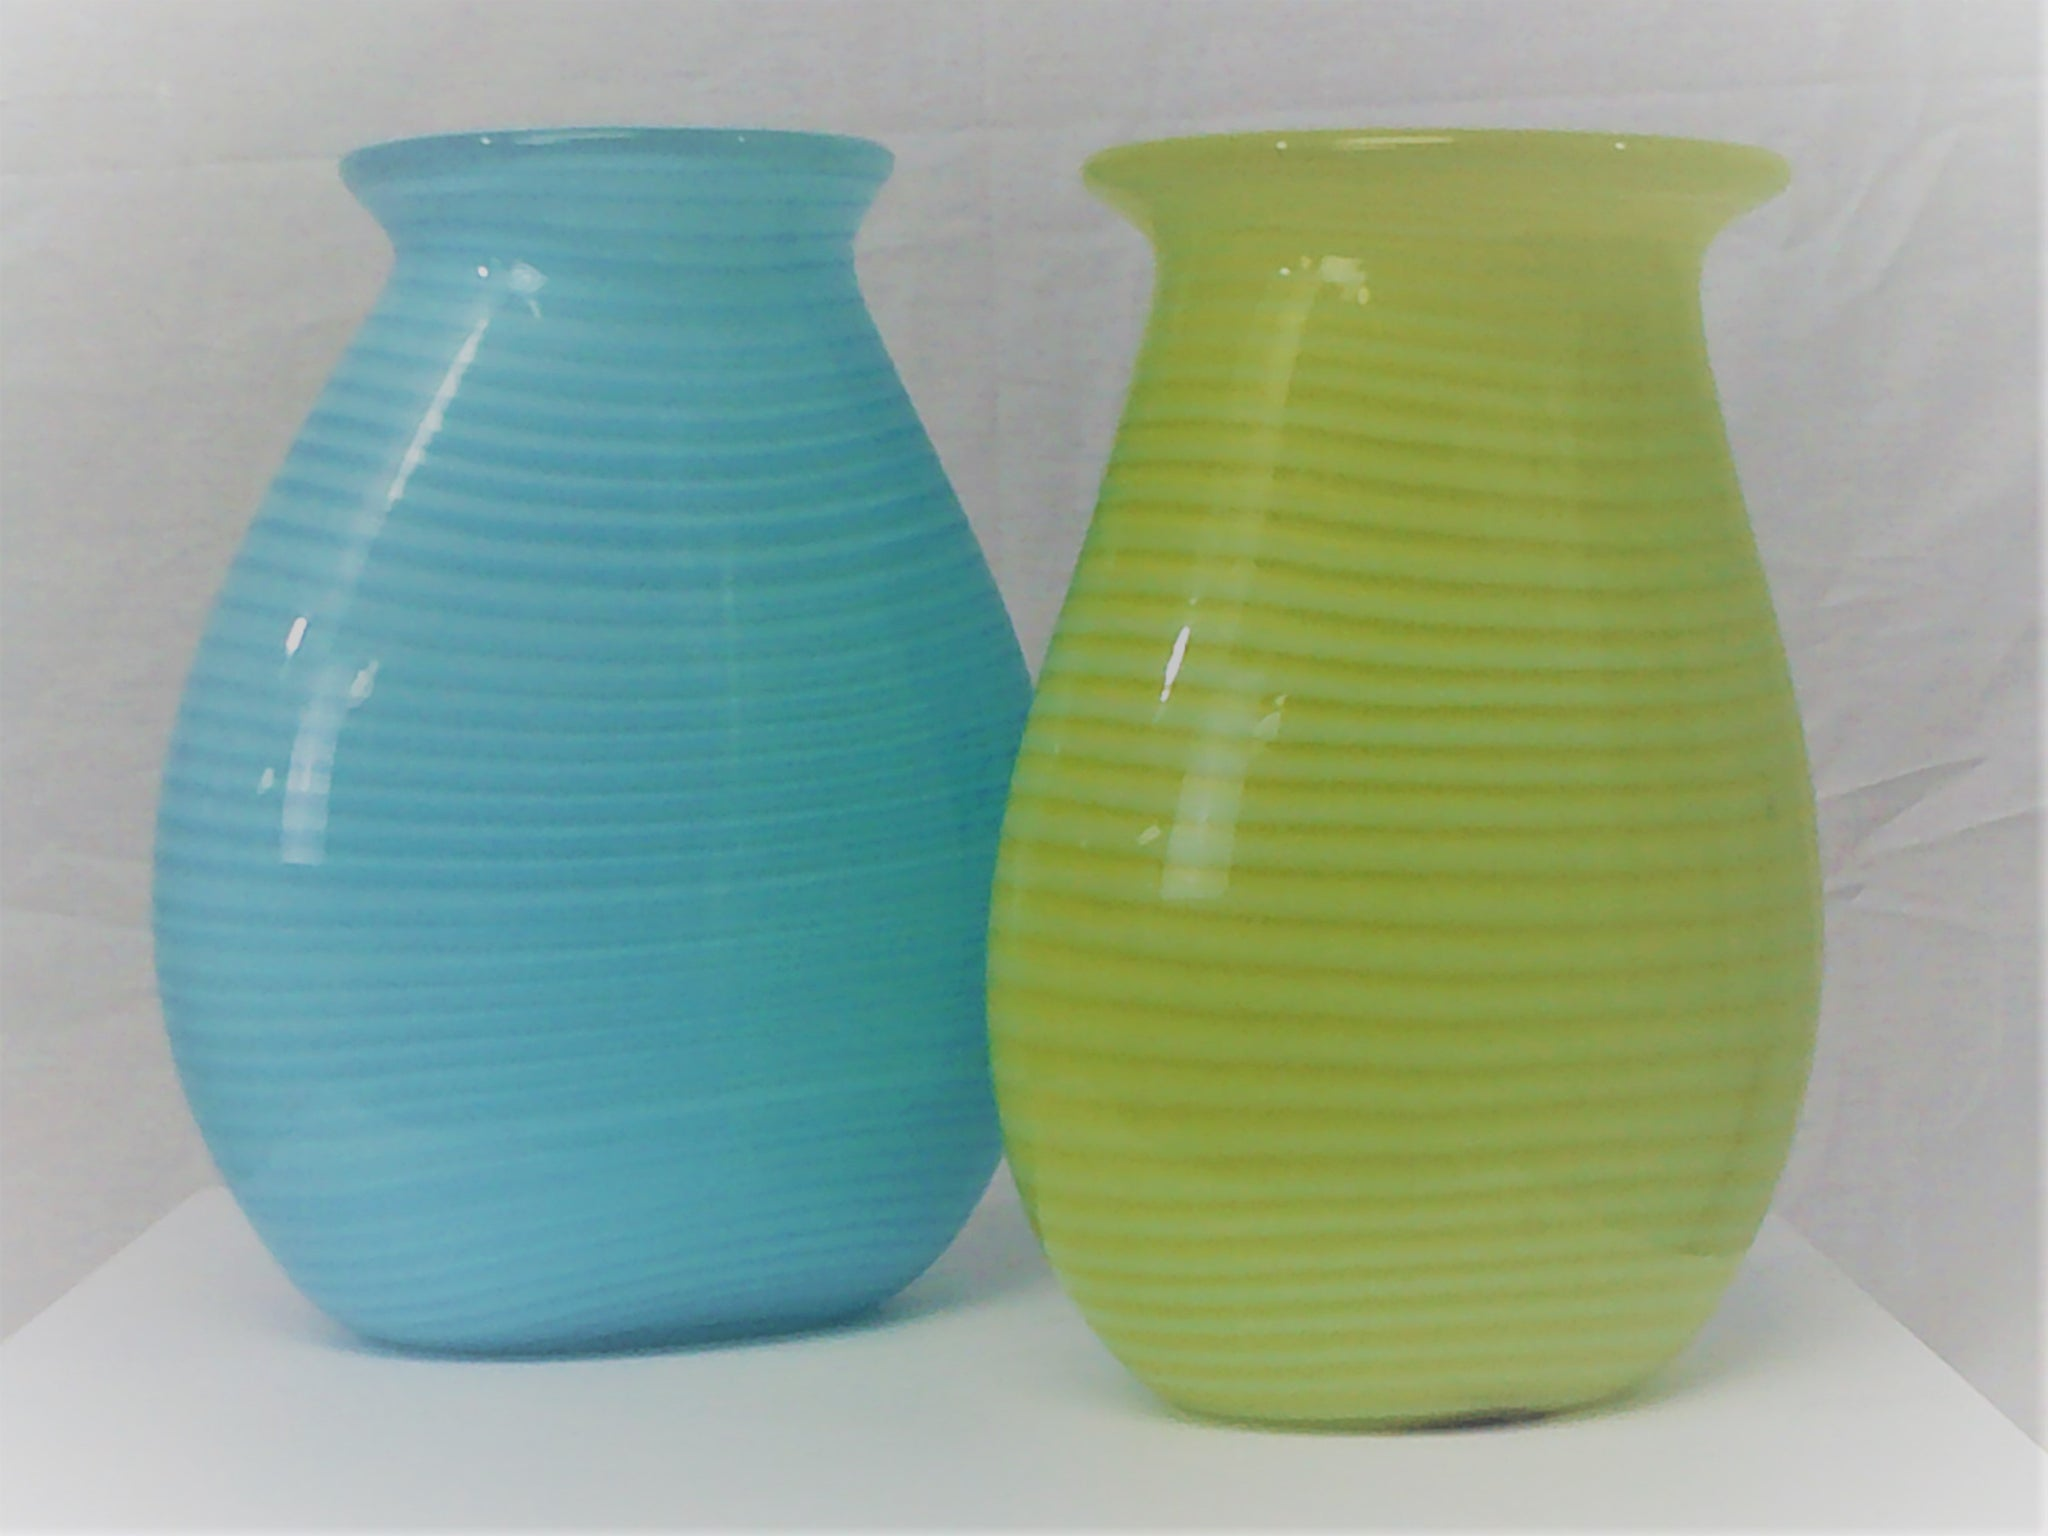 "A Rare Pair  Tiffany Art Glass Vases  7 ½"" h x 6"" w  $750  Both vases are signed by the artist Jamie Harris for Tiffany and Co.  One is dated 2002 and the other 2003.  It's rare to find a pair of these stylish vessels, perfect for a bouquet of tulips of just for display.  Harris is a 43-year old glass artist working and living in NYC.  We understand his stint with Tiffany was only for about a year, which makes theses vases even more precious and likely to appreciate in value."